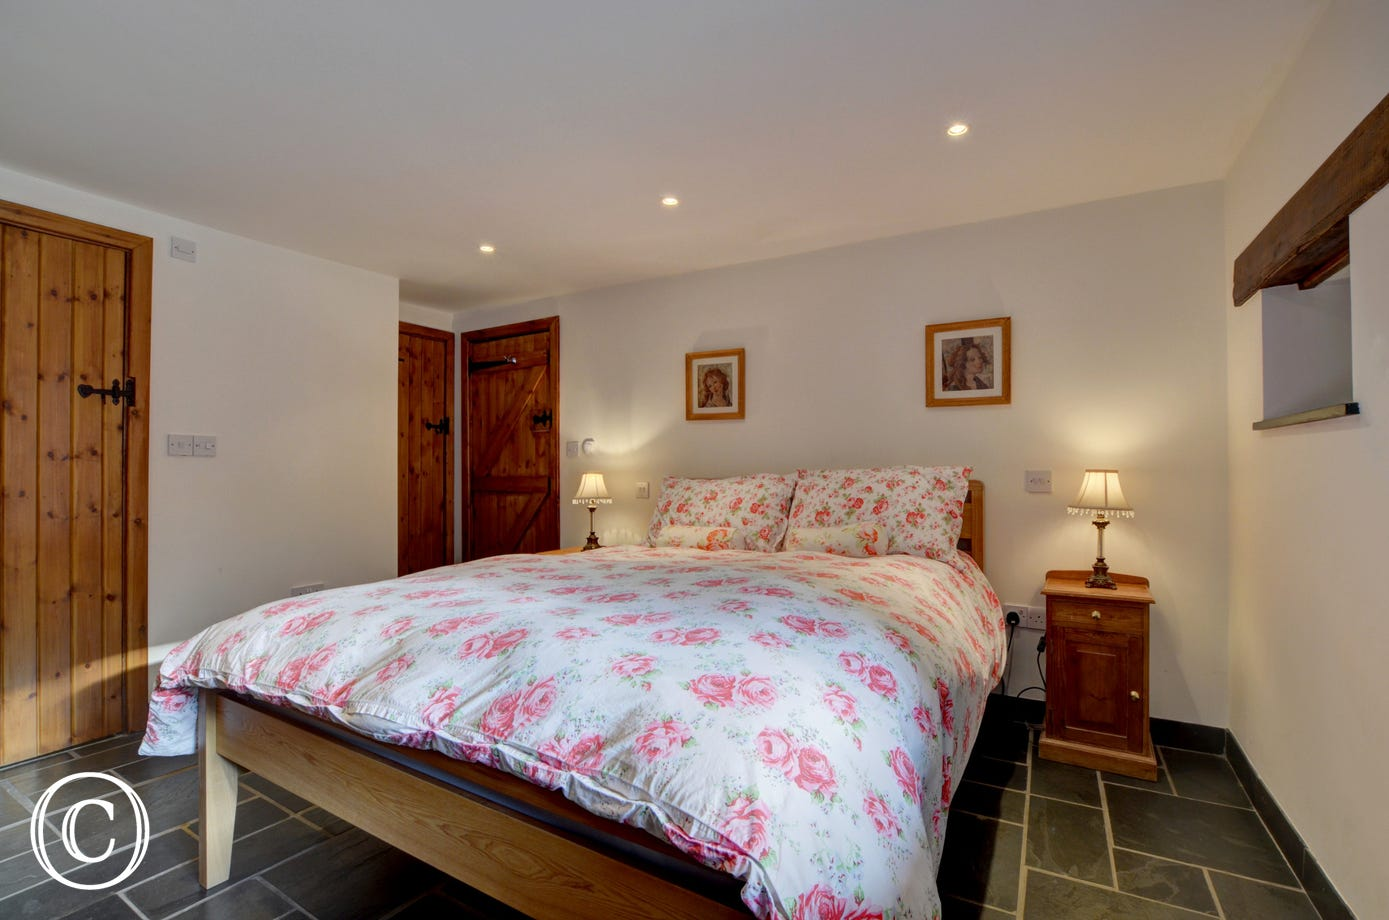 Master bedroom with kingsize bed and ensuite bathroom